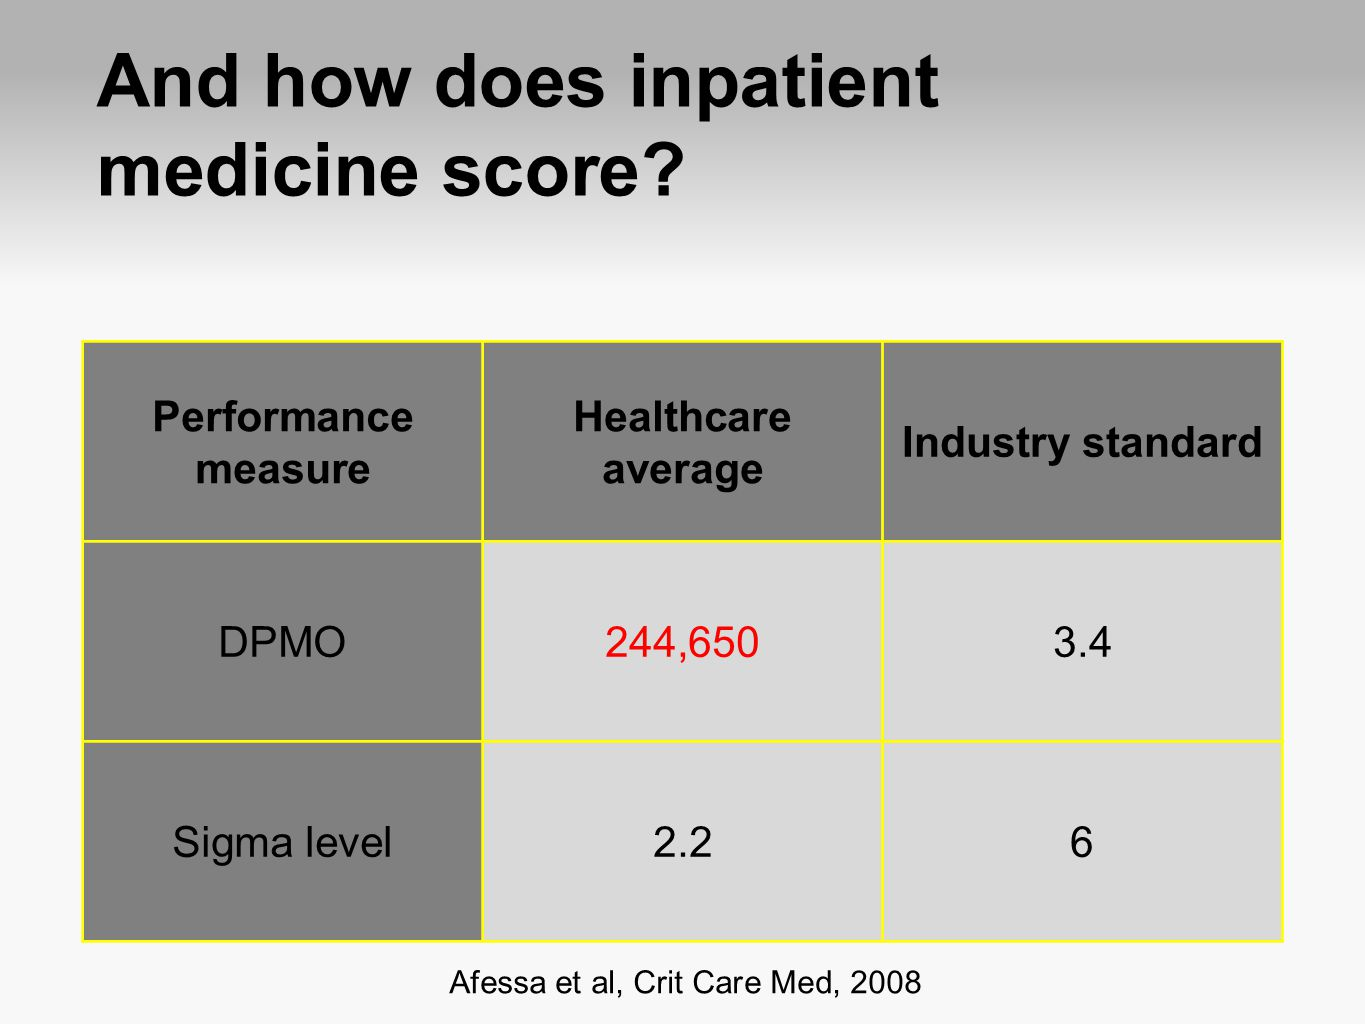 And how does inpatient medicine score